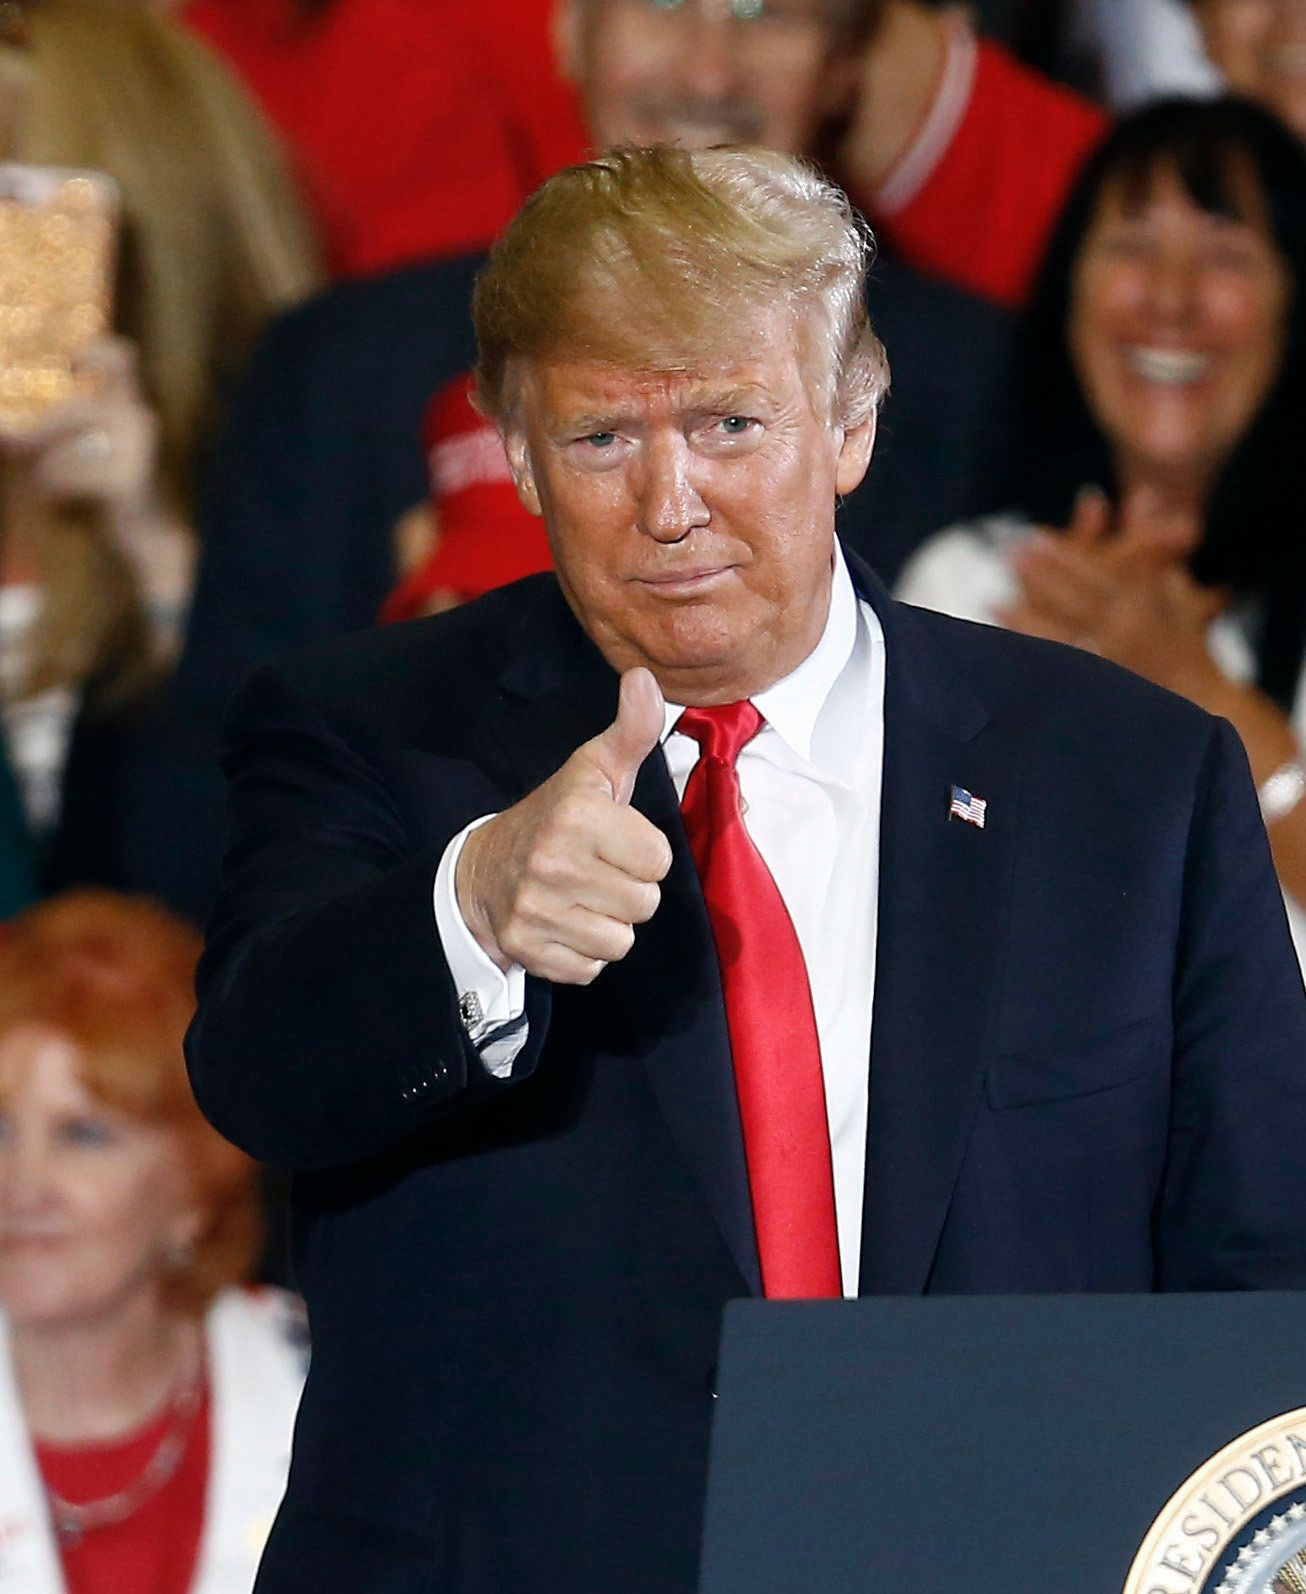 President Donald Trump gives a thumbs up after he spoke at a campaign rally, Saturday, Nov. 3, 2018, in Pensacola, Fla. (AP Photo/Butch Dill)